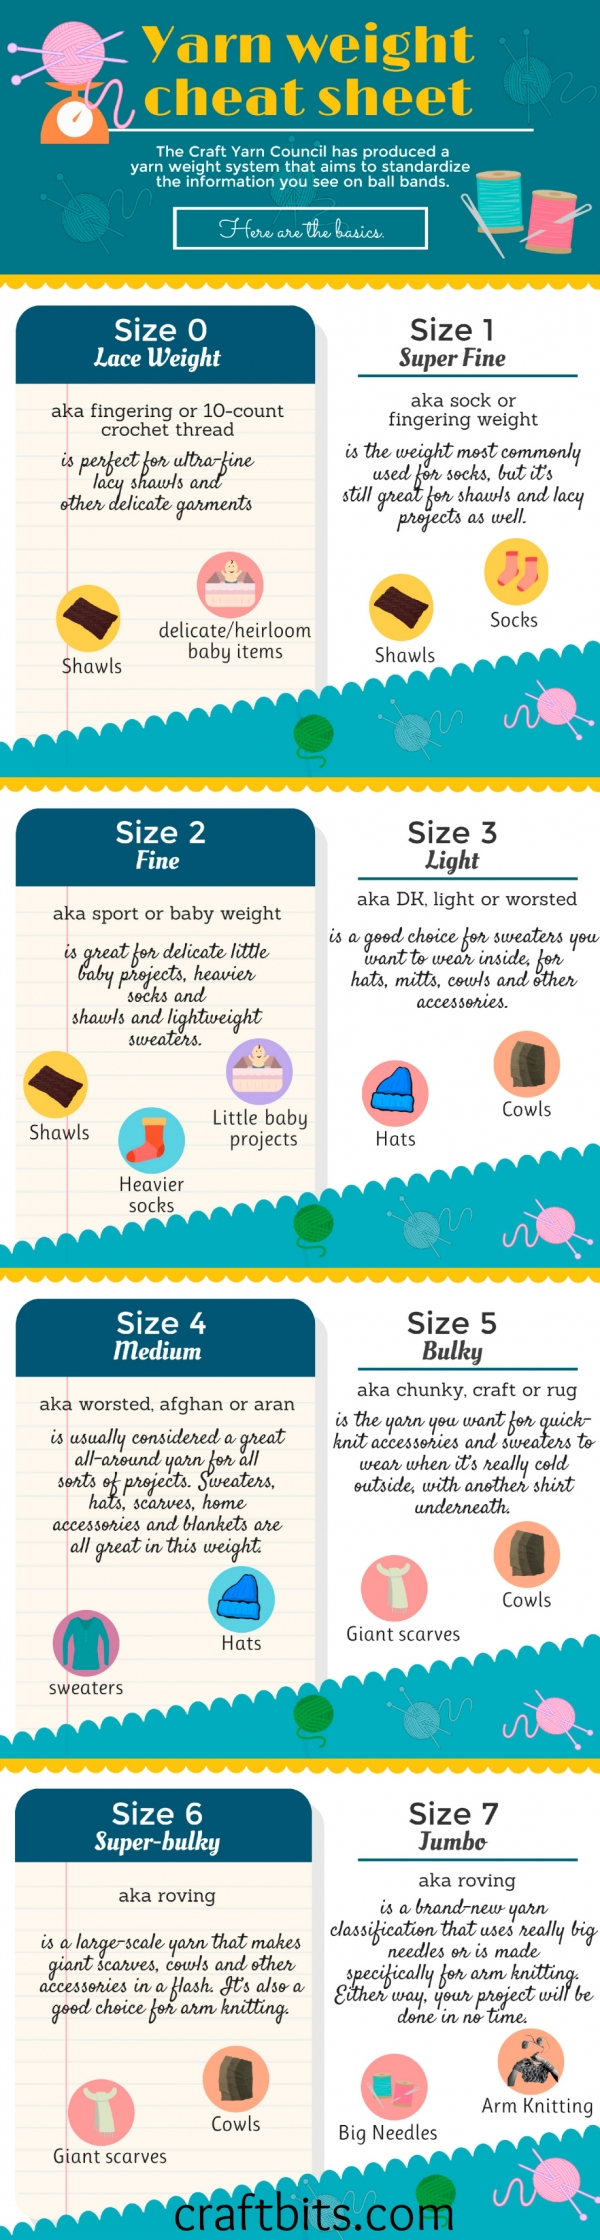 yarn-weight-cheat-sheet-guidelines